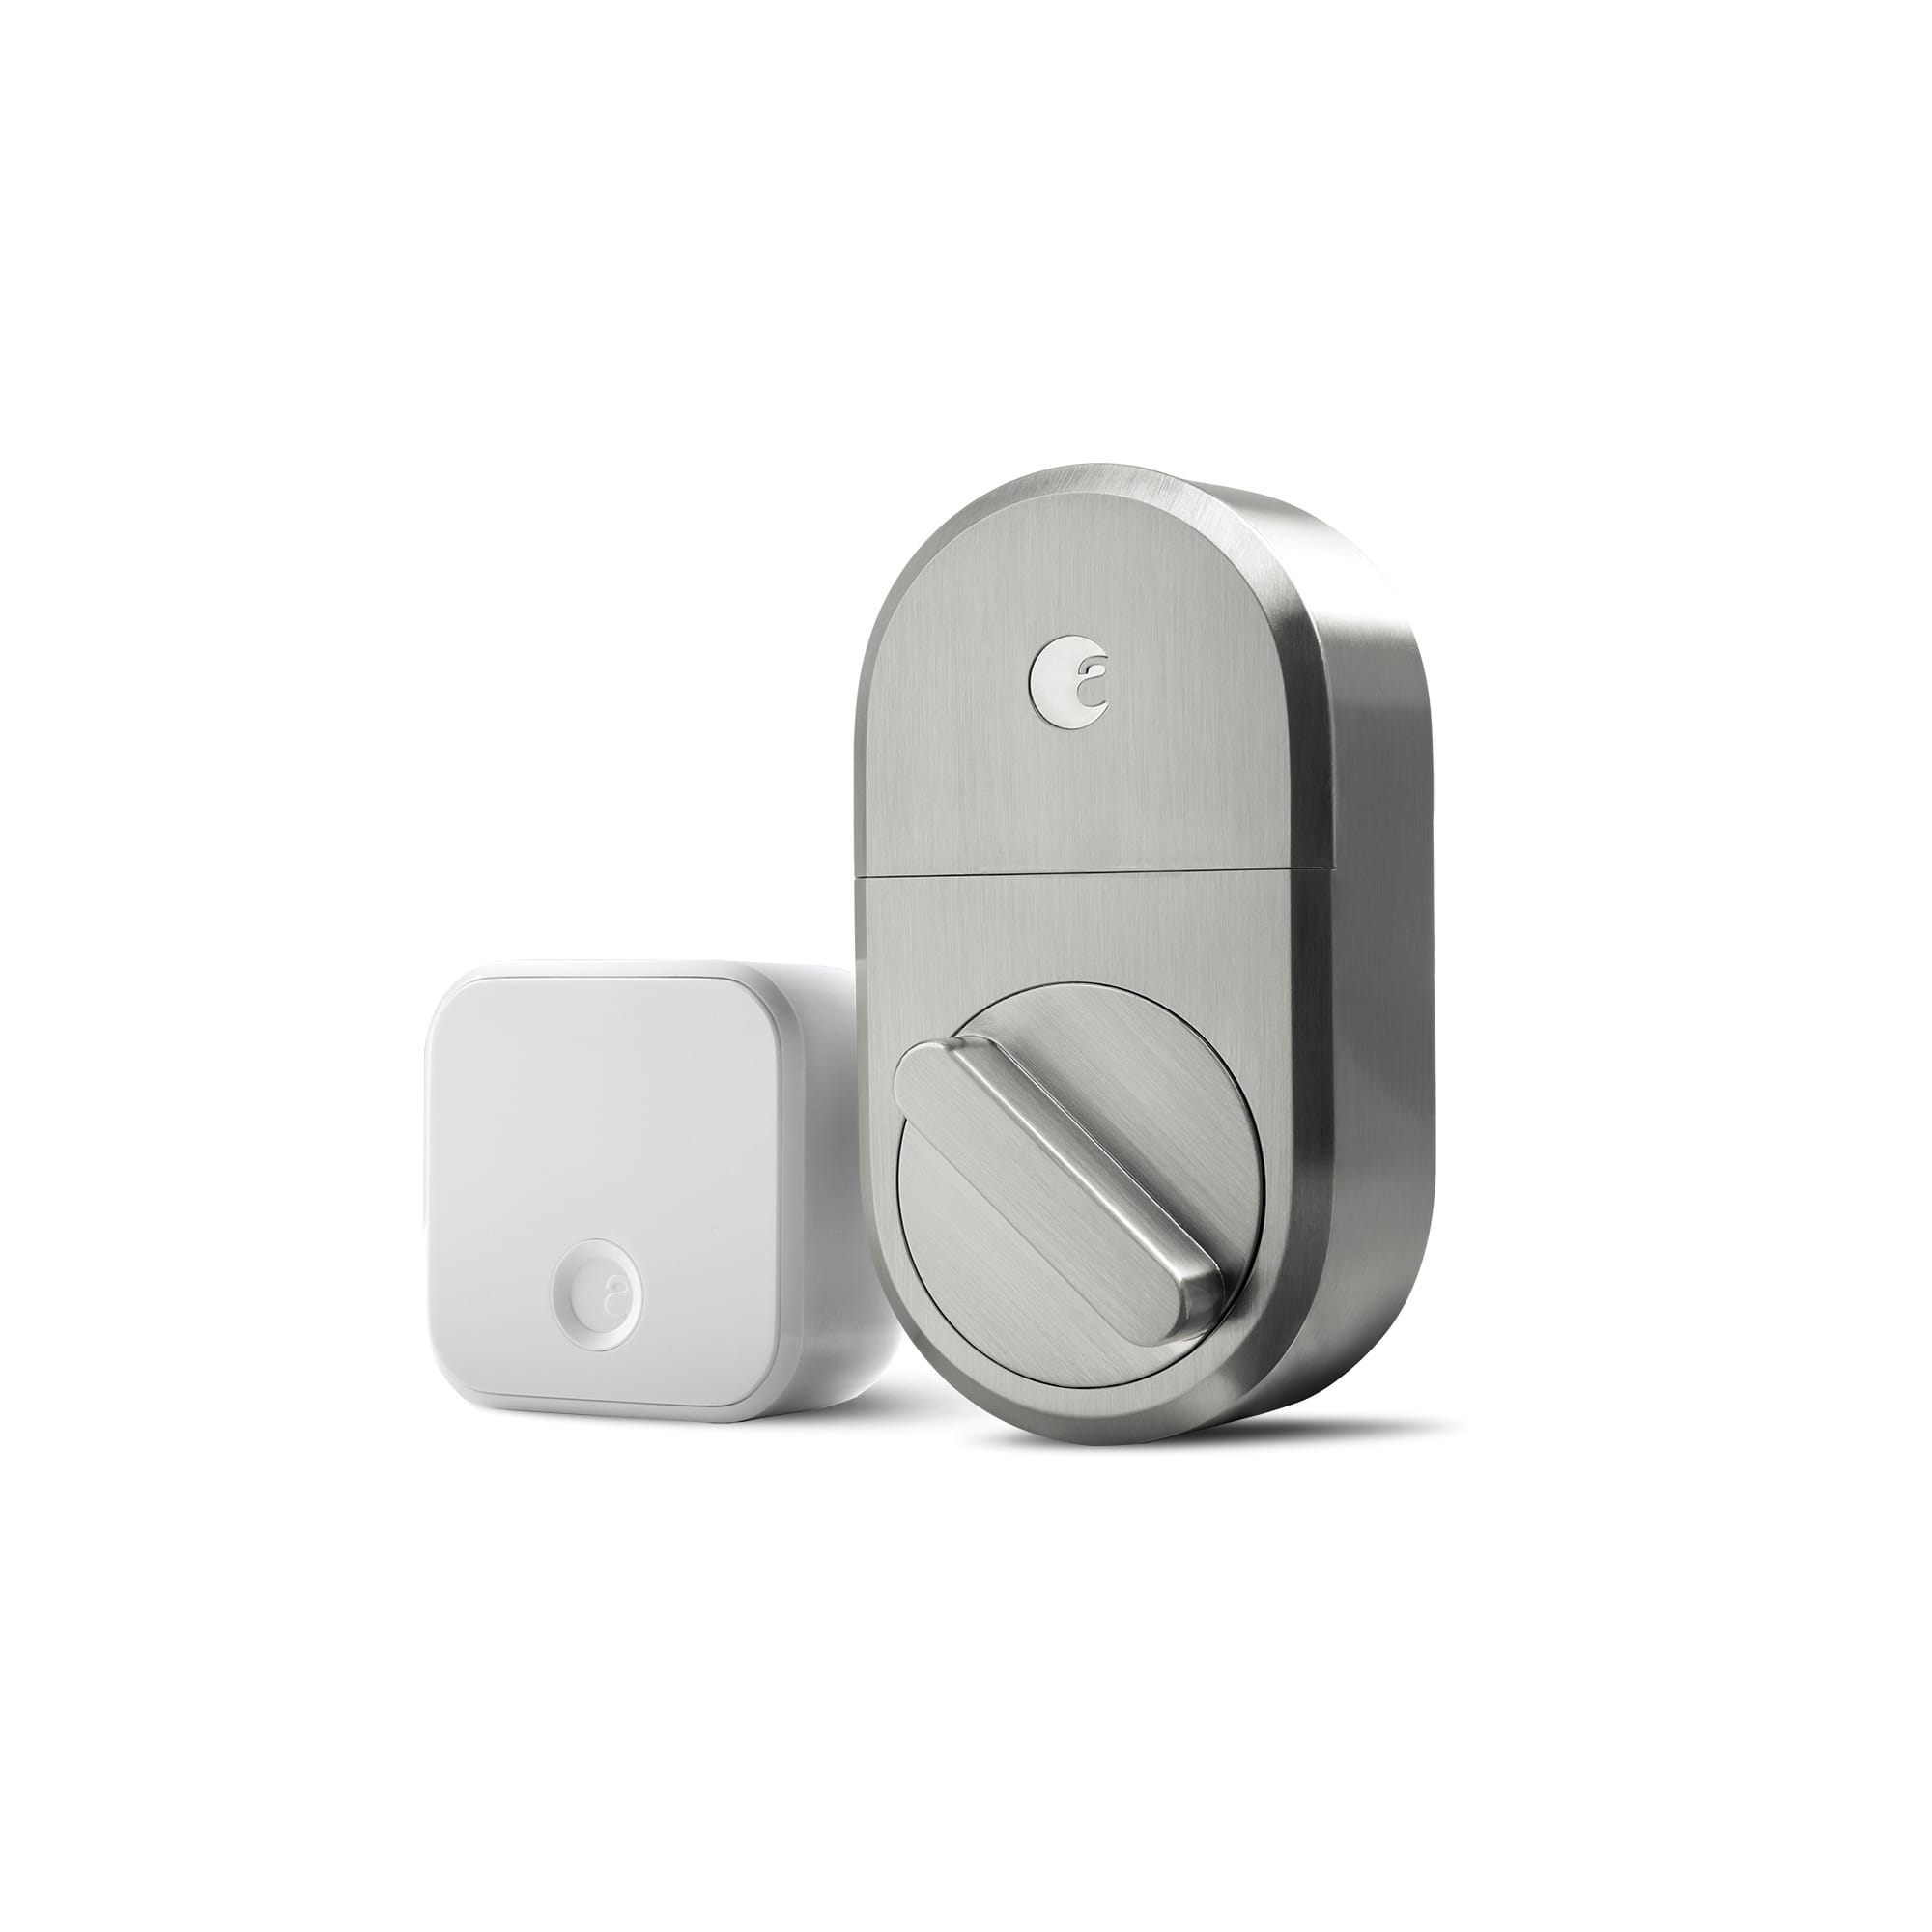 August Smart Lock + Connect $139.99 on Costco.com